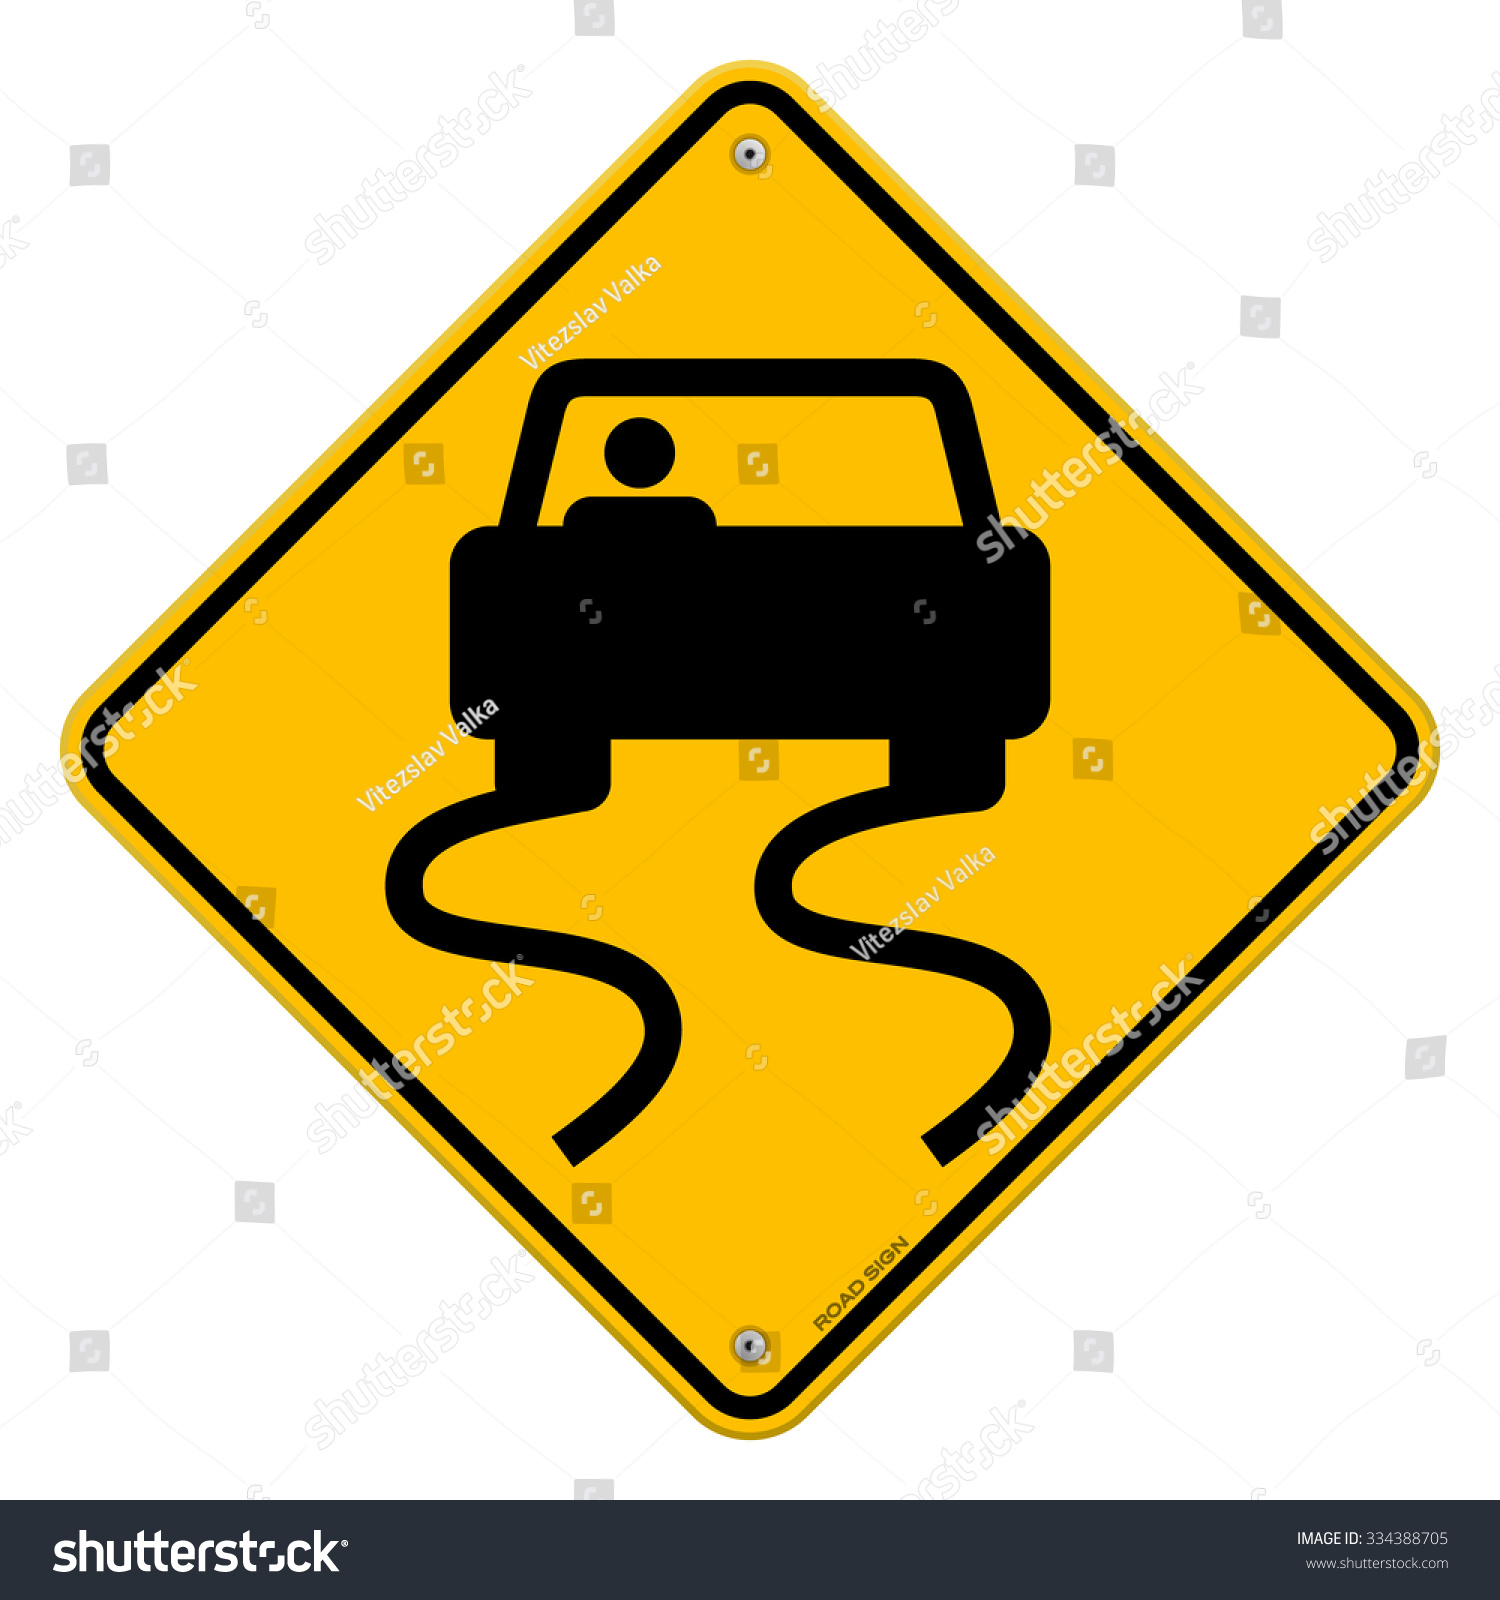 Yellow wet road sign slippery symbol stock vector 334388705 yellow wet road sign slippery symbol of a car on yellow roadsign with curvy tracks biocorpaavc Choice Image